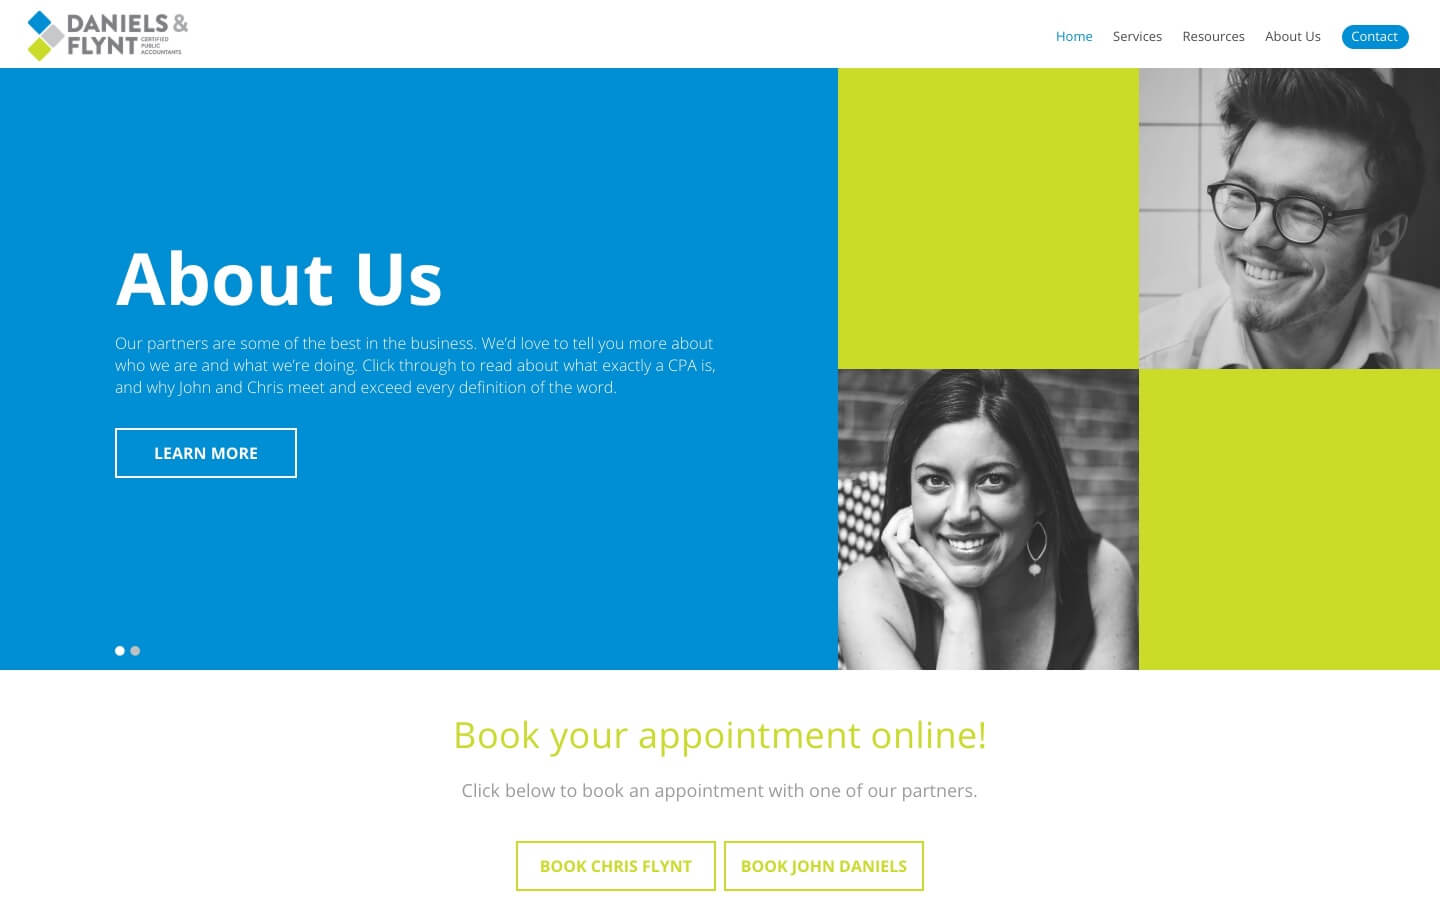 cpa and accounting firm daniels and flynt website